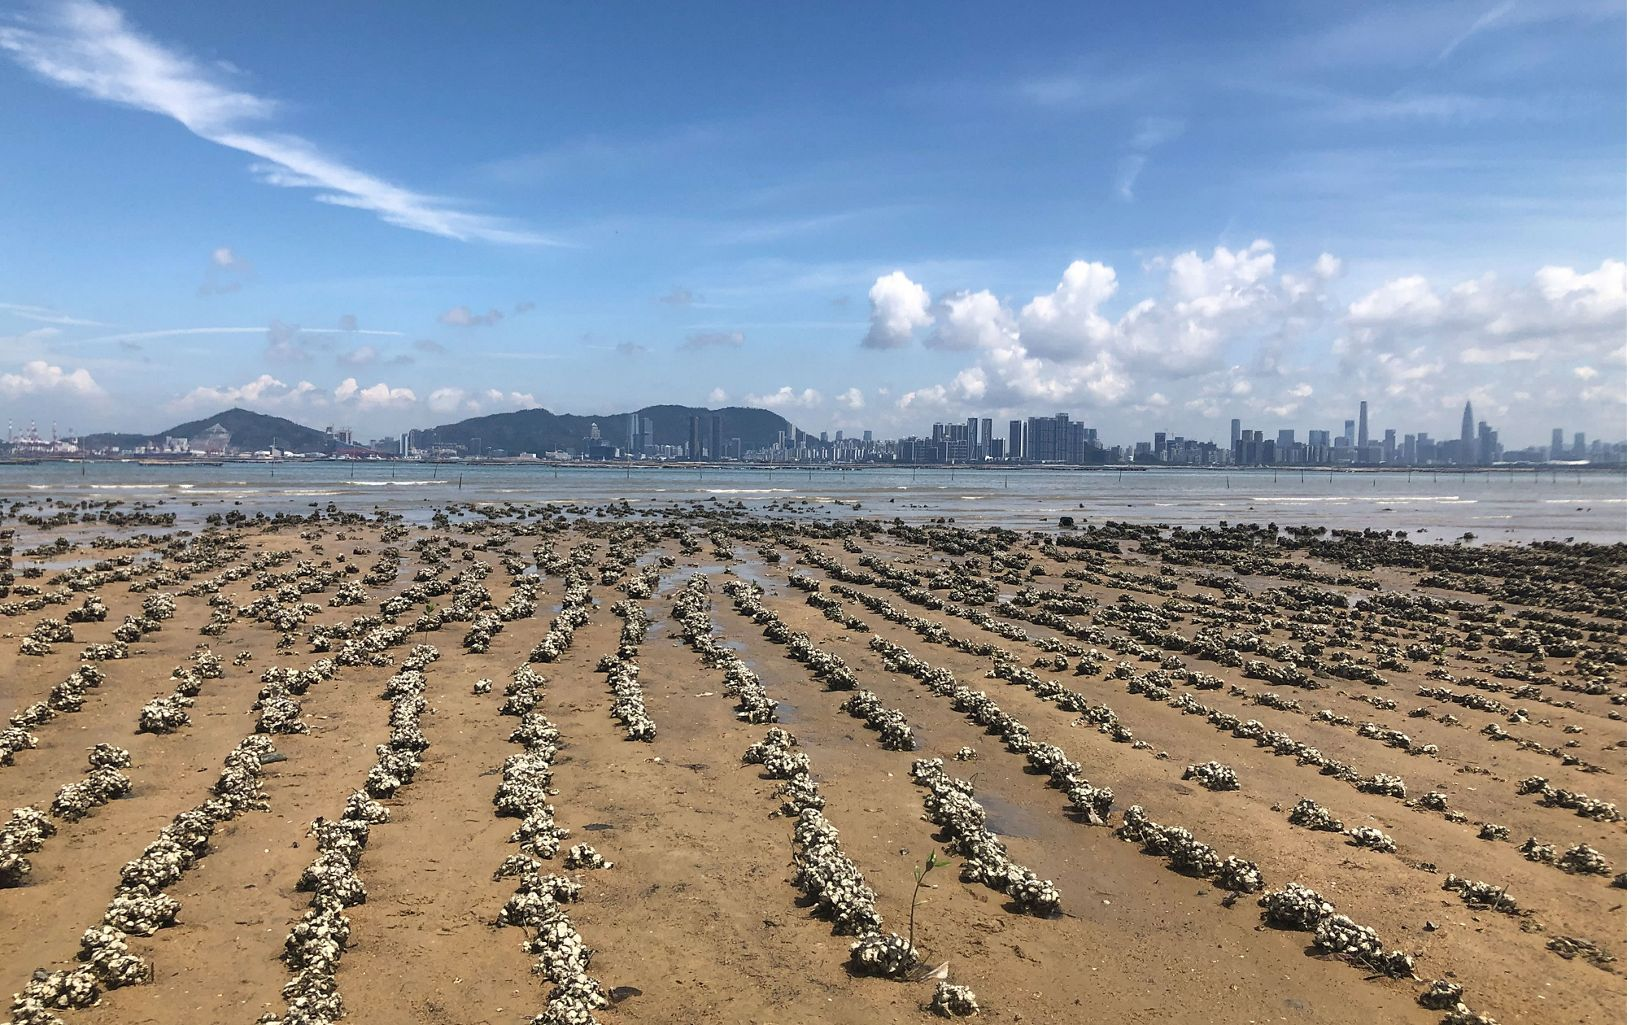 Rows of oyster shells cover sandy ground with the city of Shenzhen in the background.